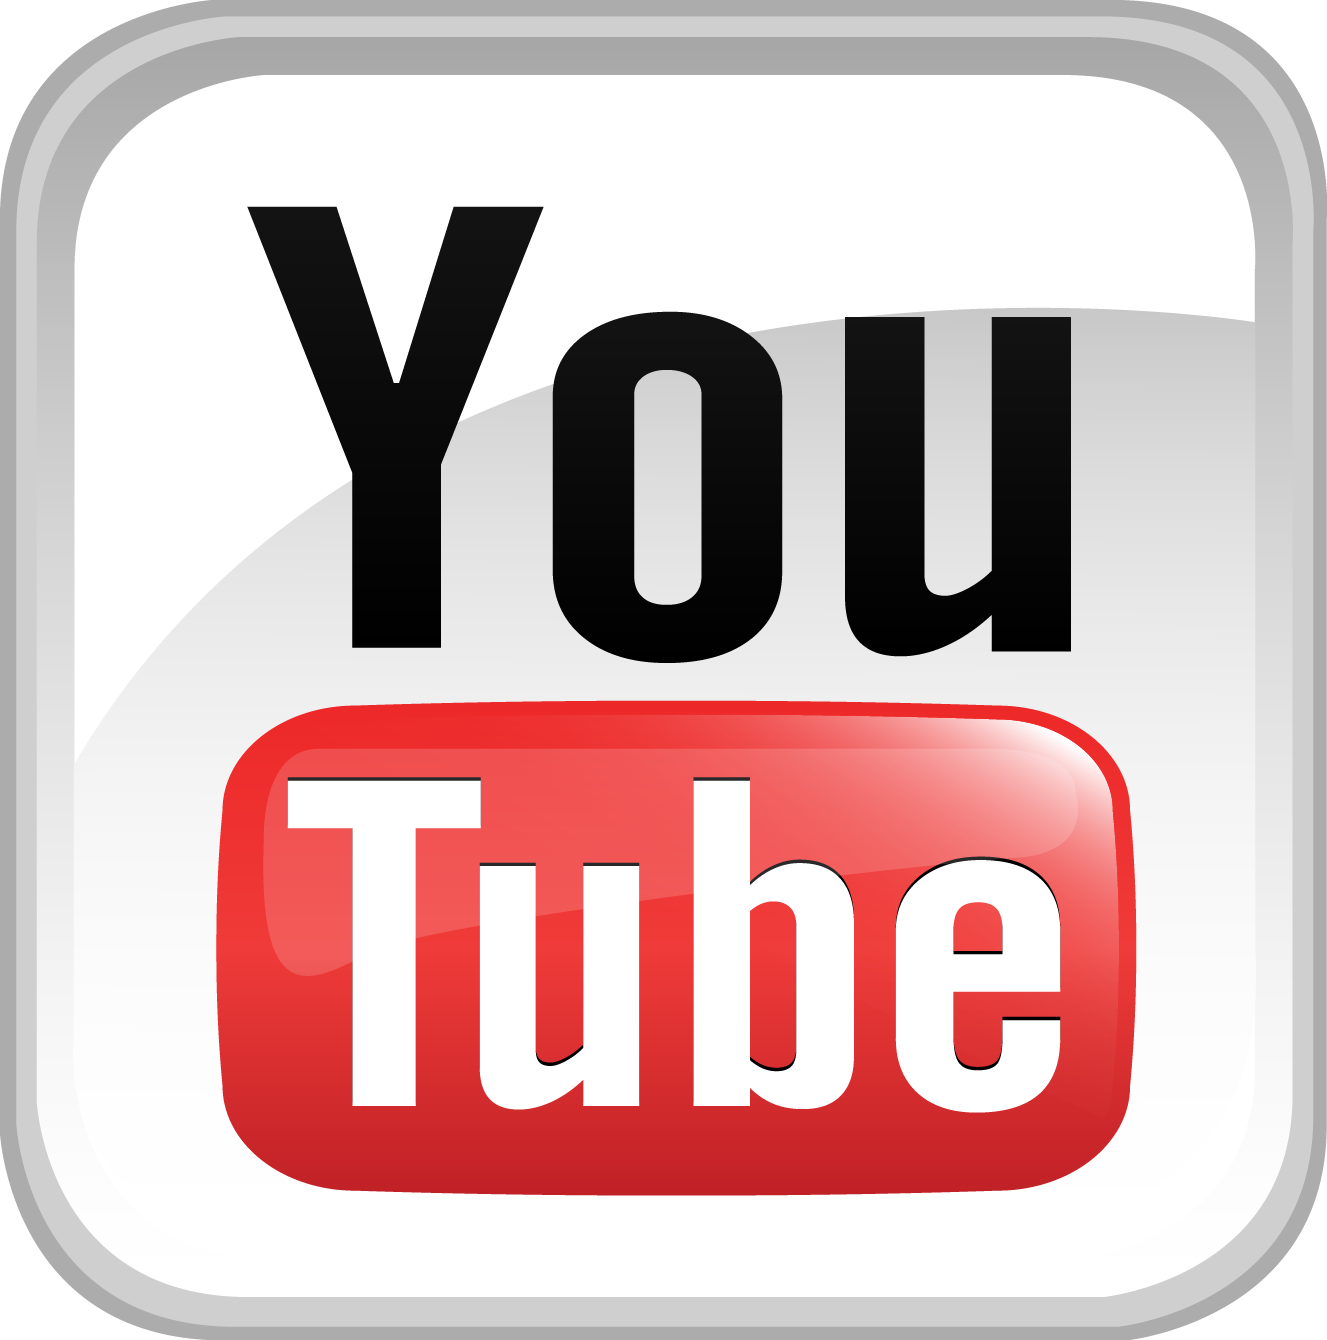 Oak Cliff Bible Fellowship YouTube Channel